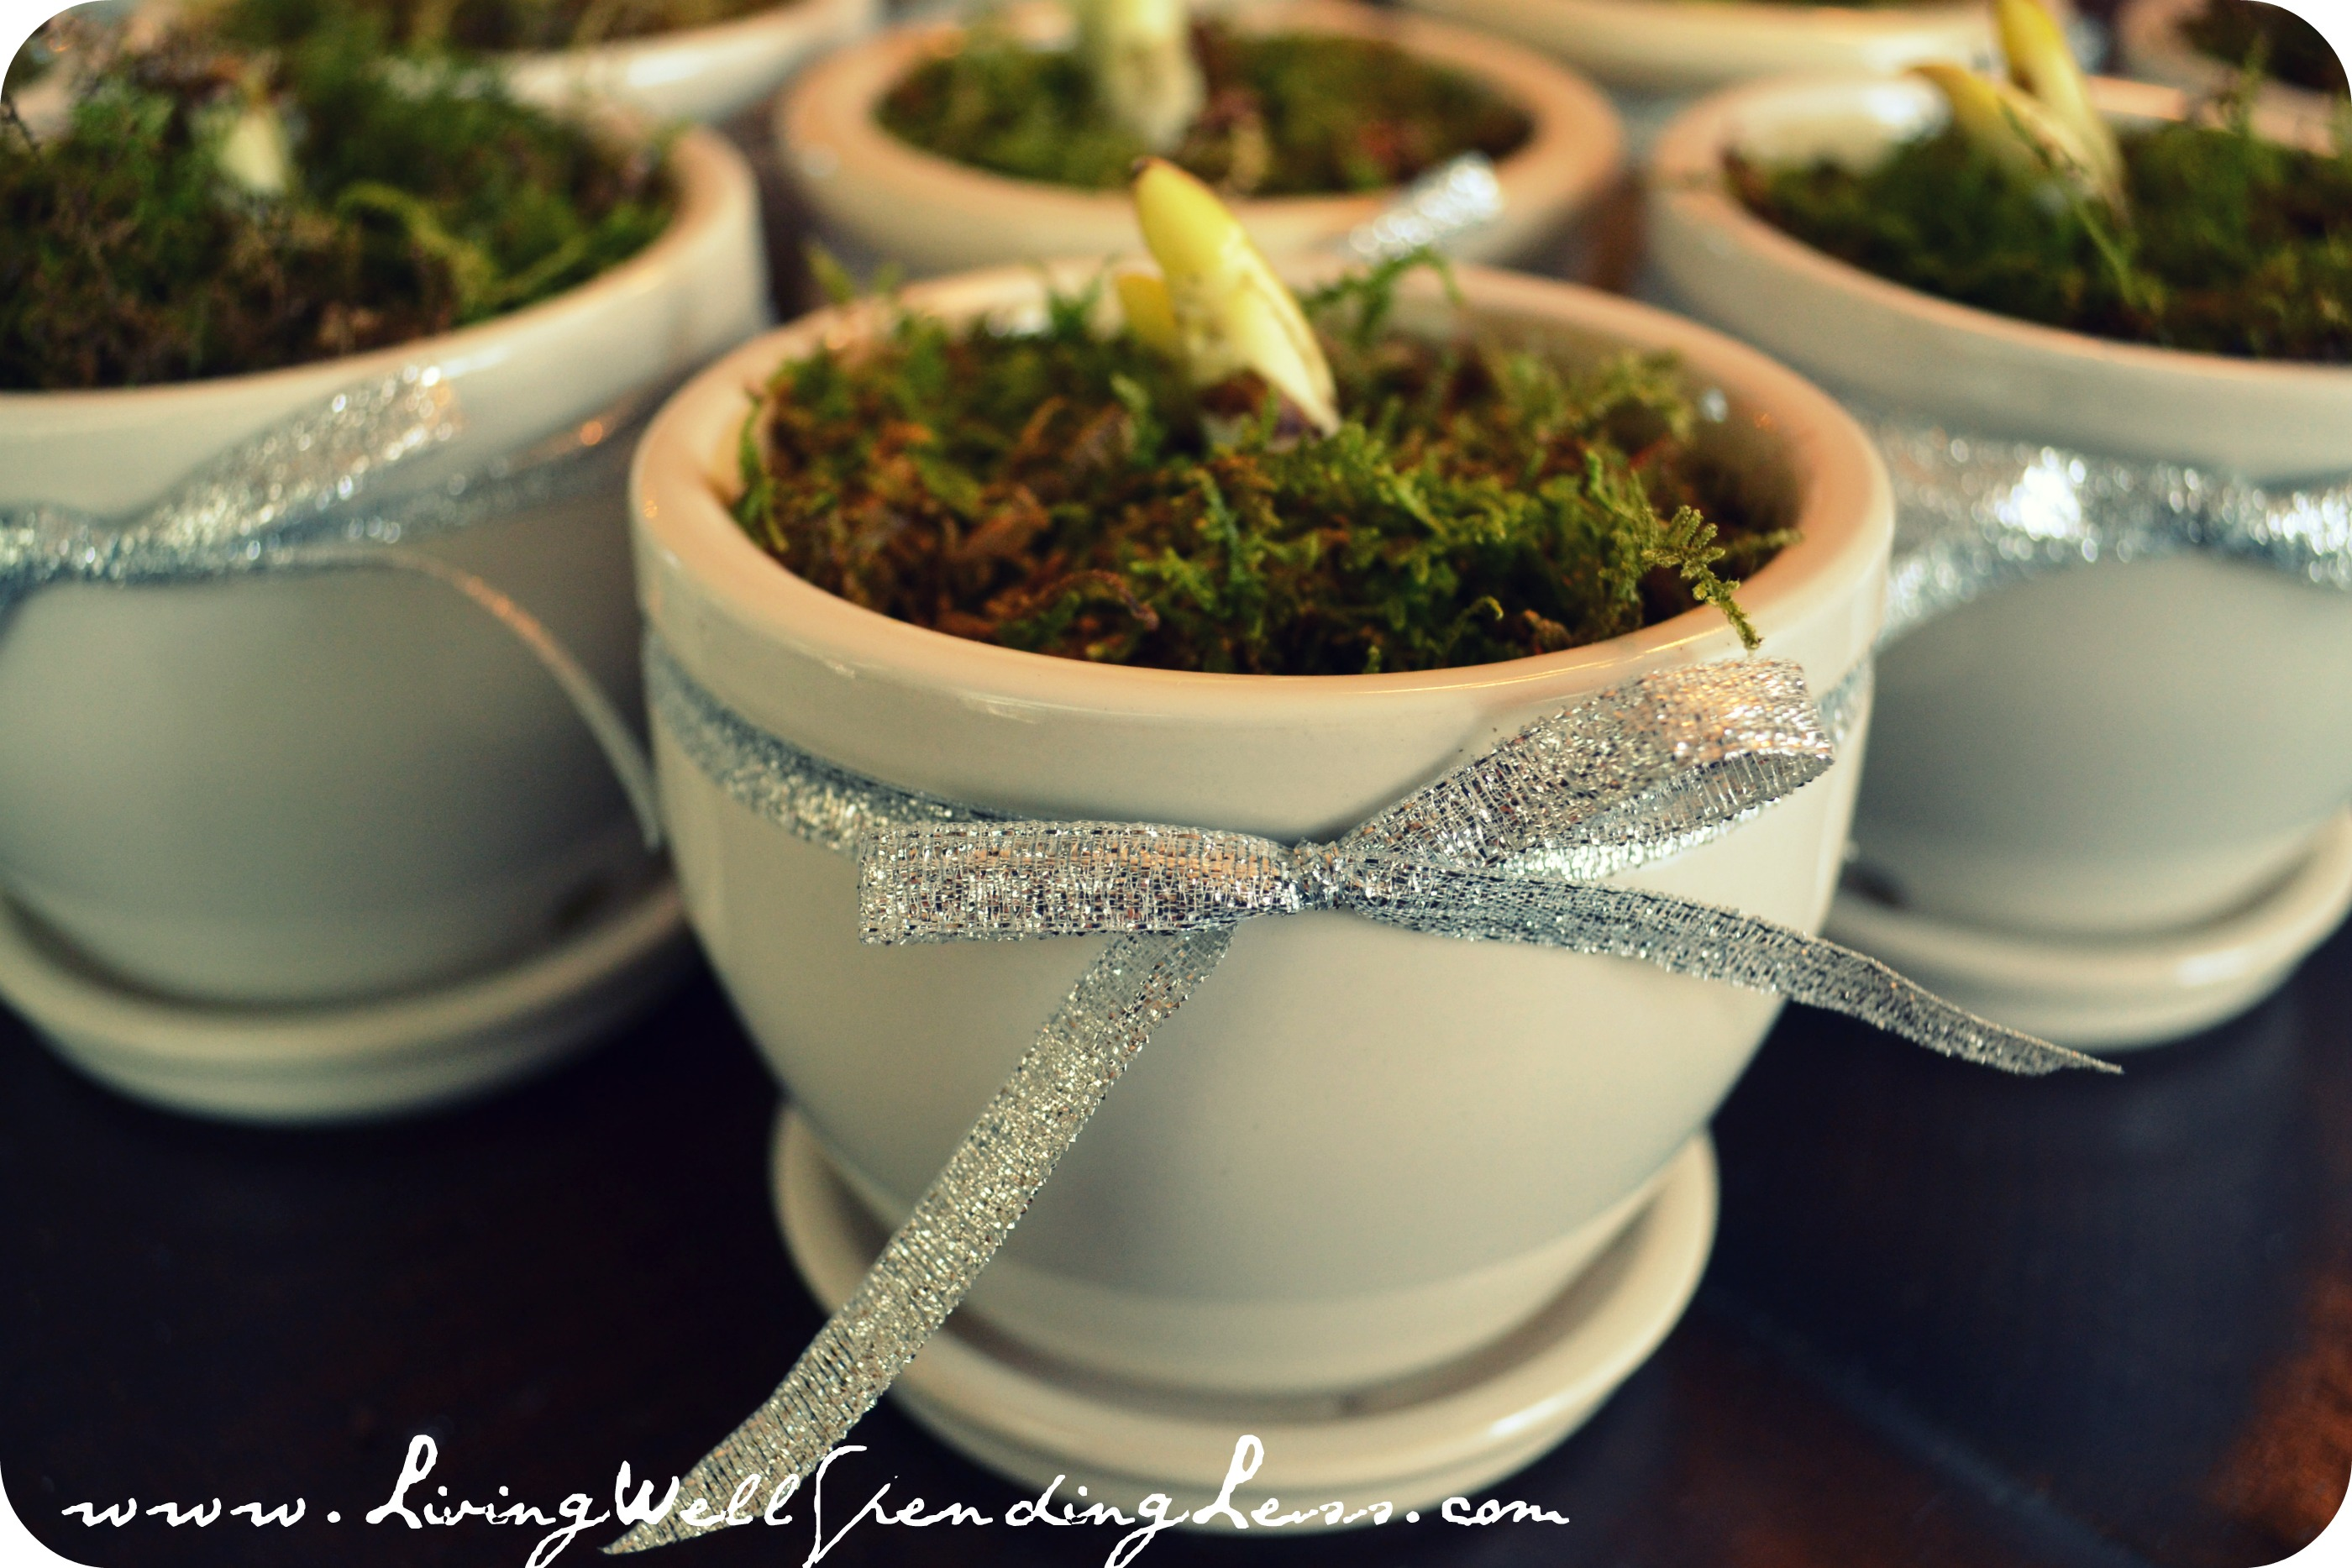 Handmade Holiday Gifts Potted Paperwhite Bulb Group Gift